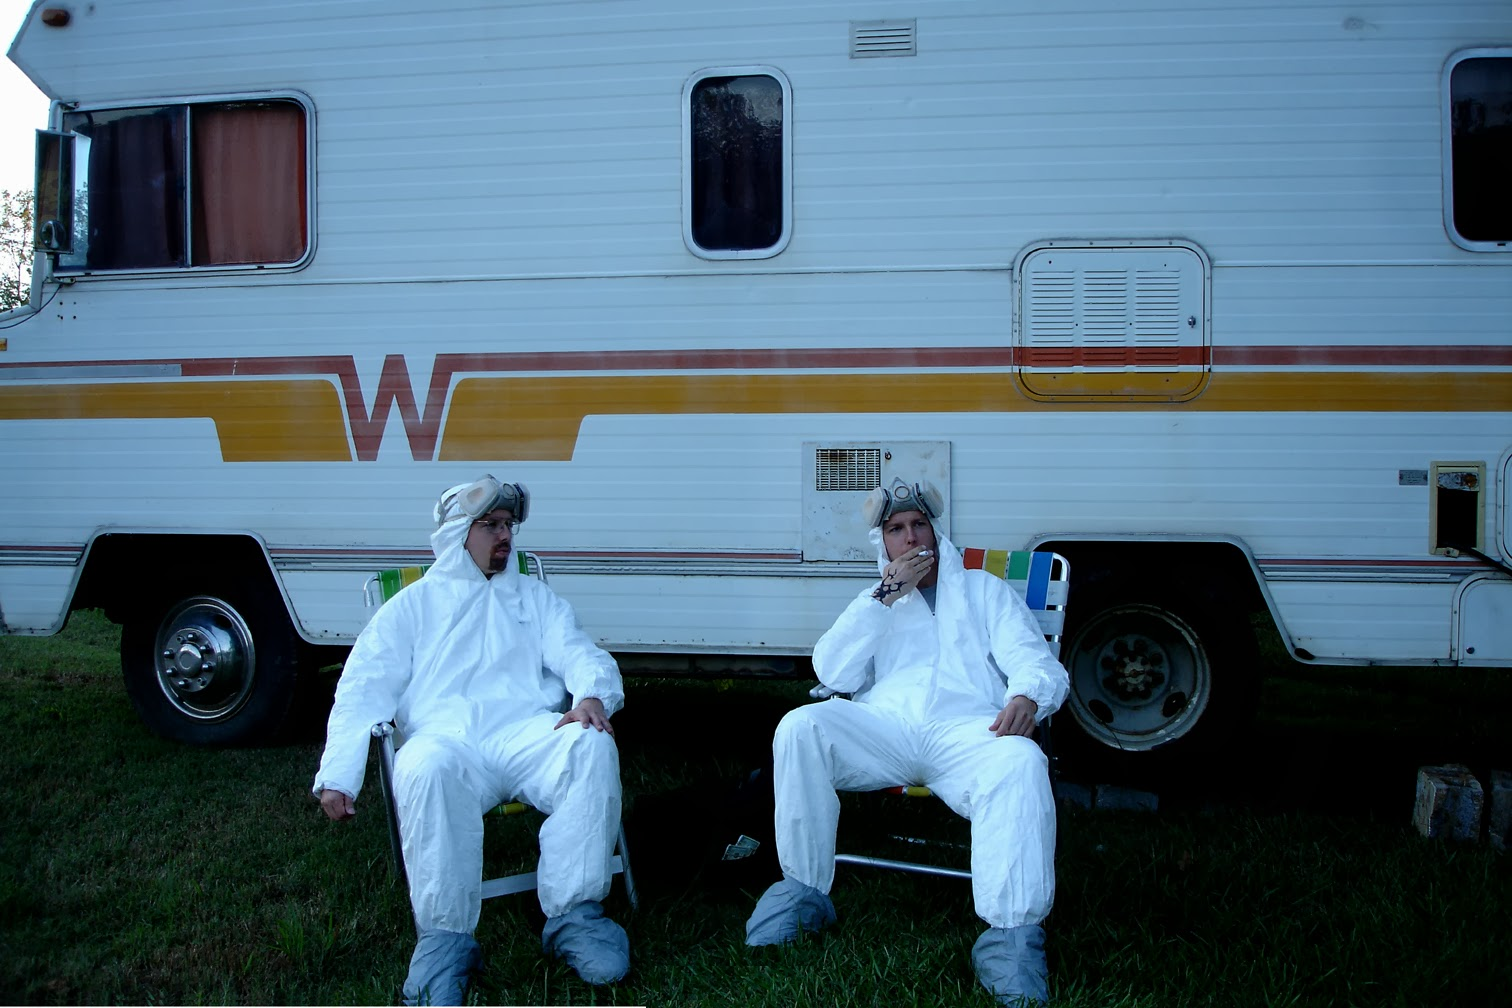 WardWorks: Breaking Bad Photo Shoot